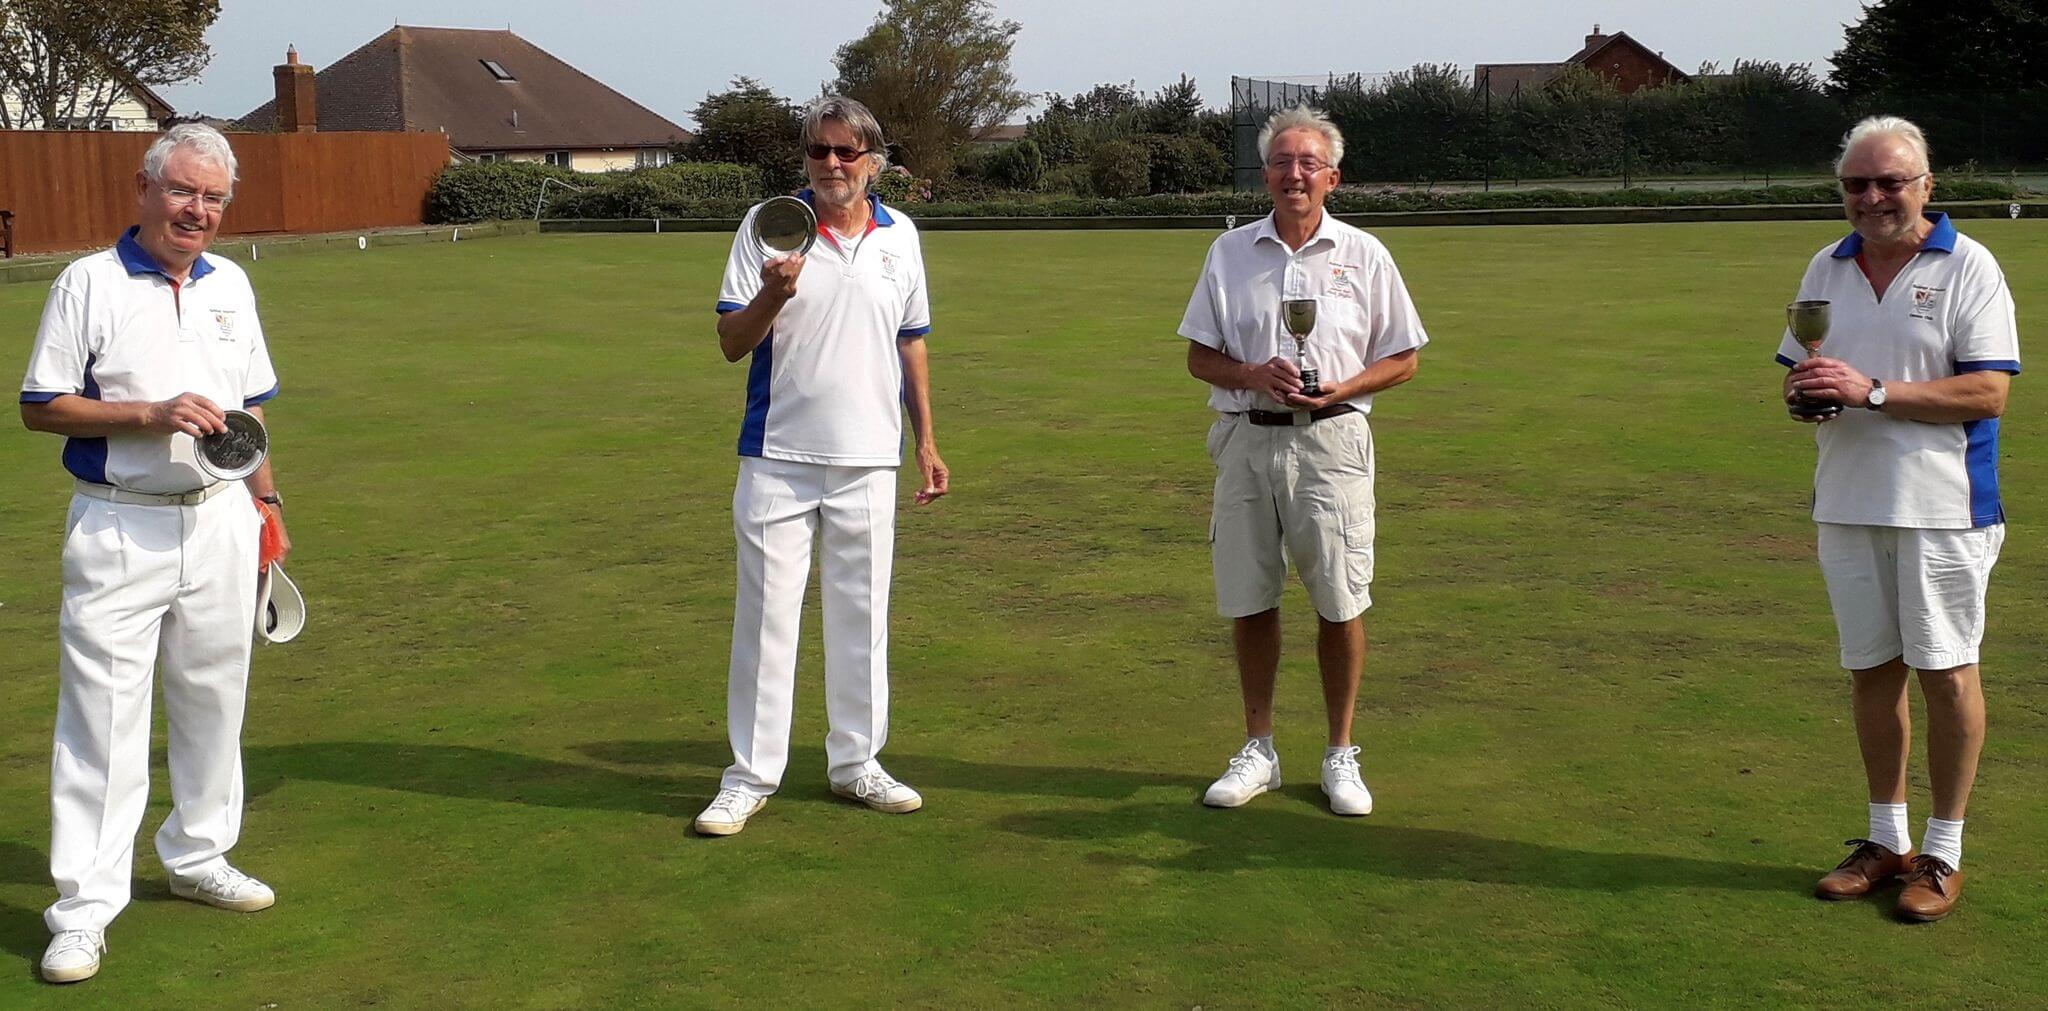 Men's Pairs Final at Budleigh - Brian Ward and David Roberts (runners-up), with Paul Griffin and Peter Foreman (winners). Picture: David Roberts